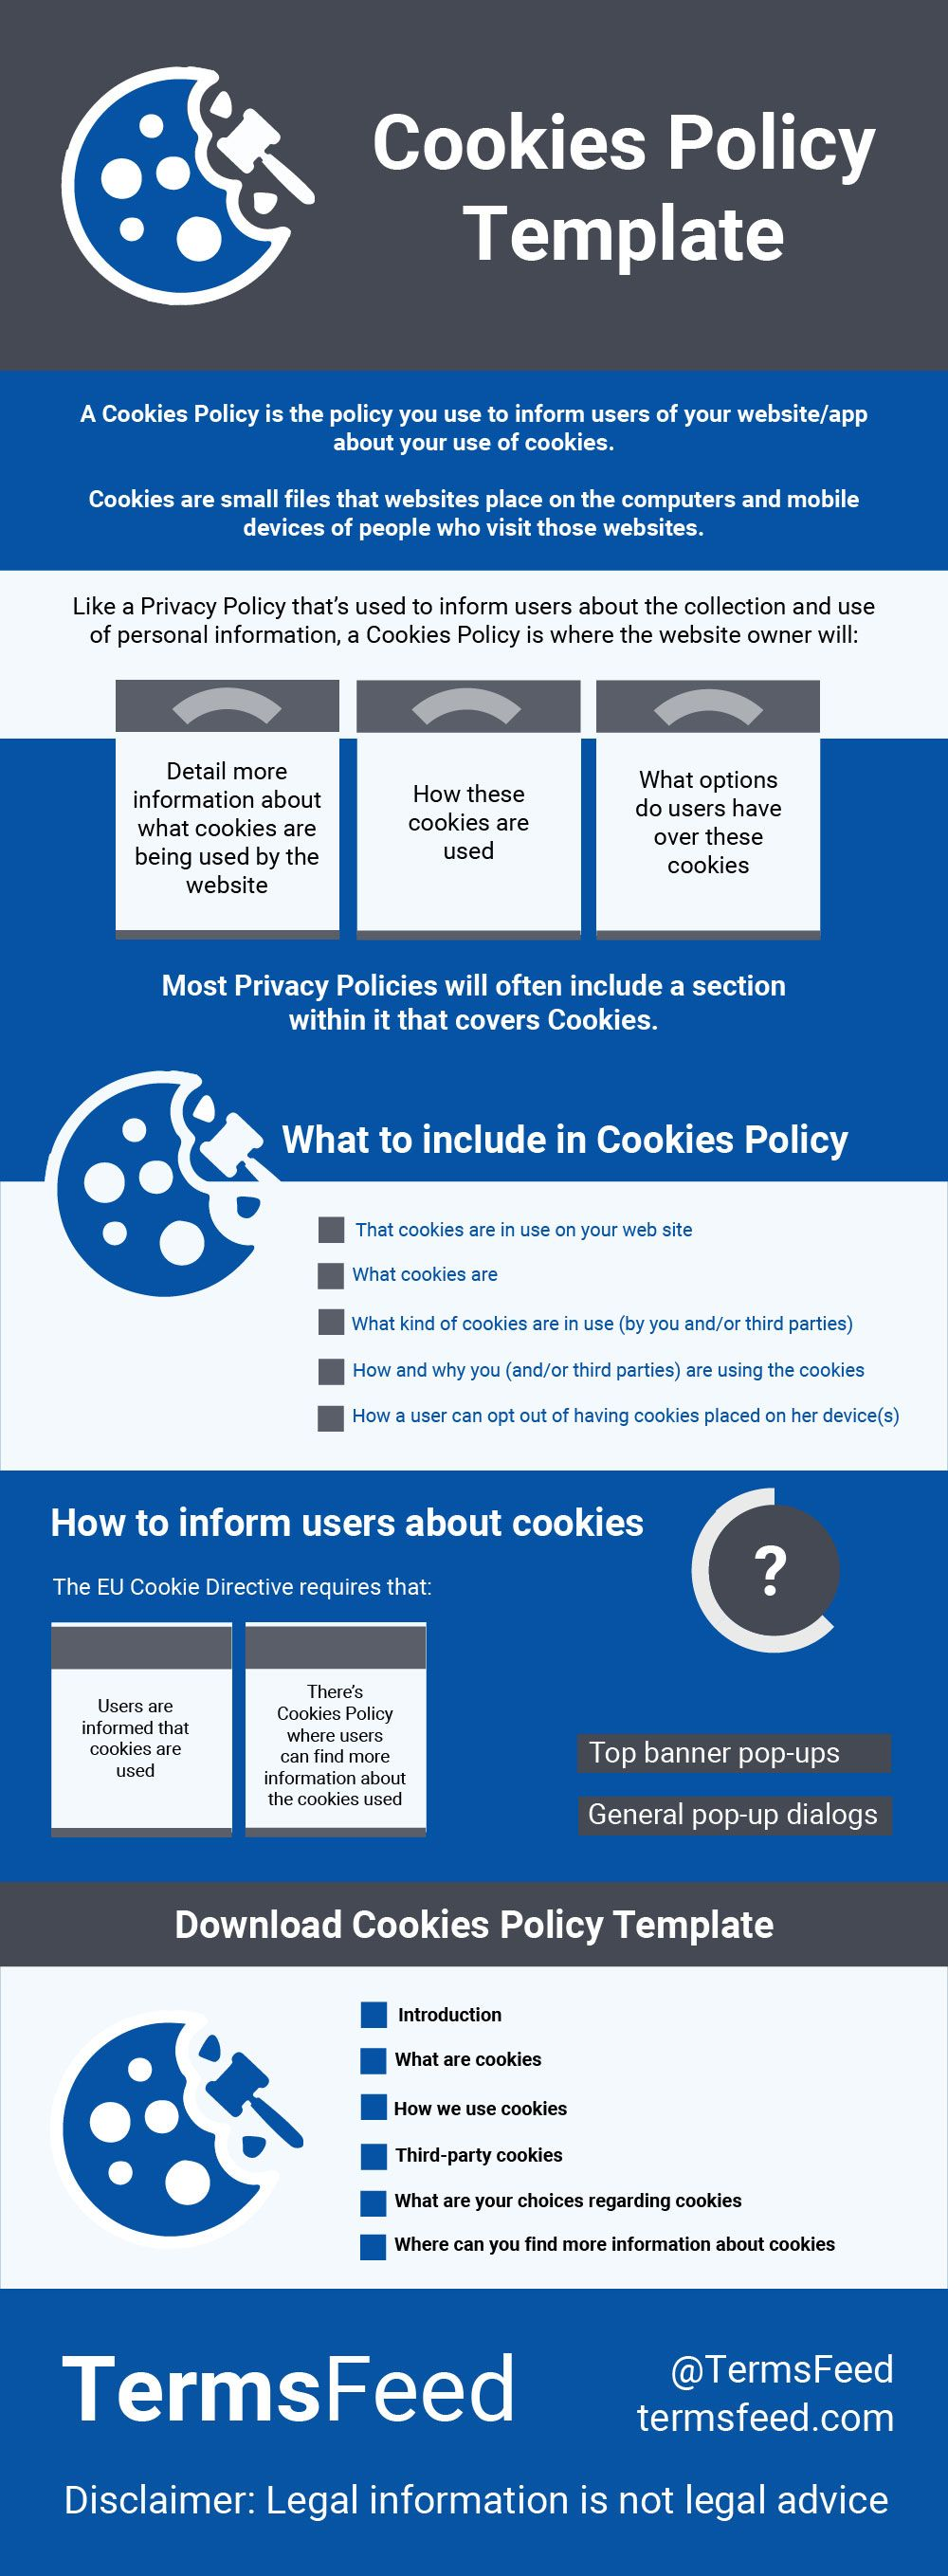 click to download a universal cookies policy template that you can customize for your personal business needs cookies policy pinterest cookies